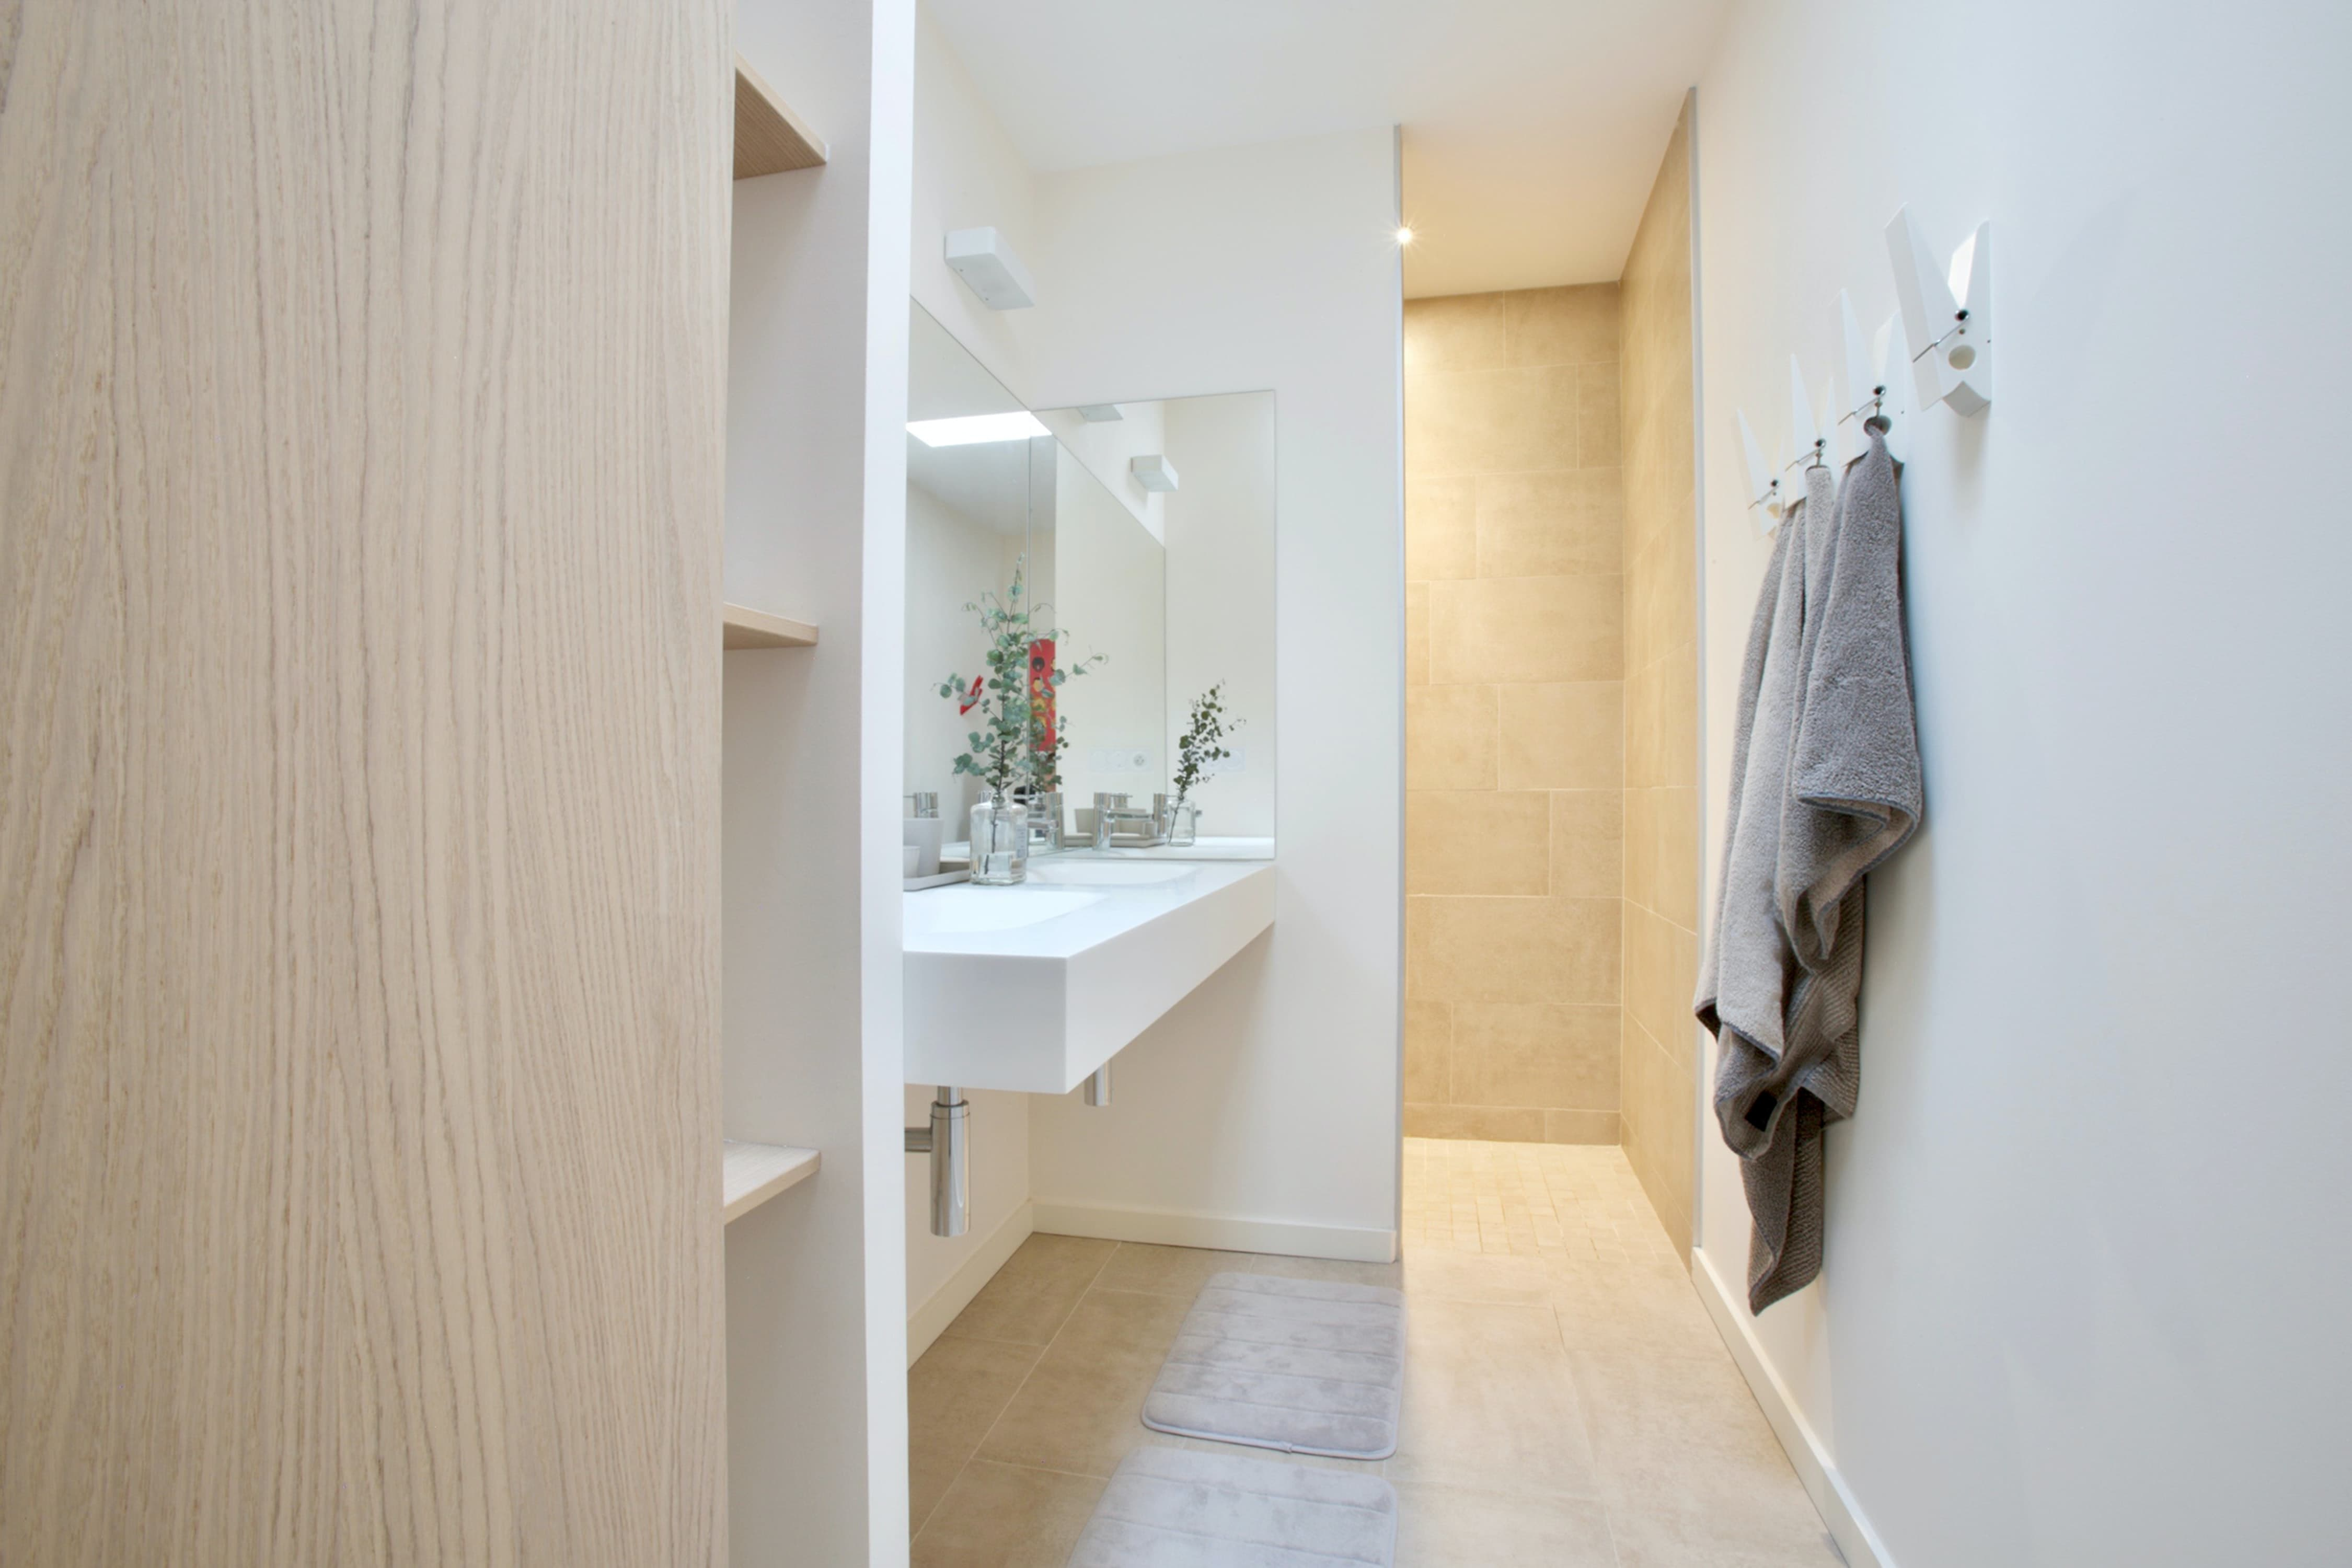 Un Baño Estrecho Y Largo Toma Estas Ideas De Decoración